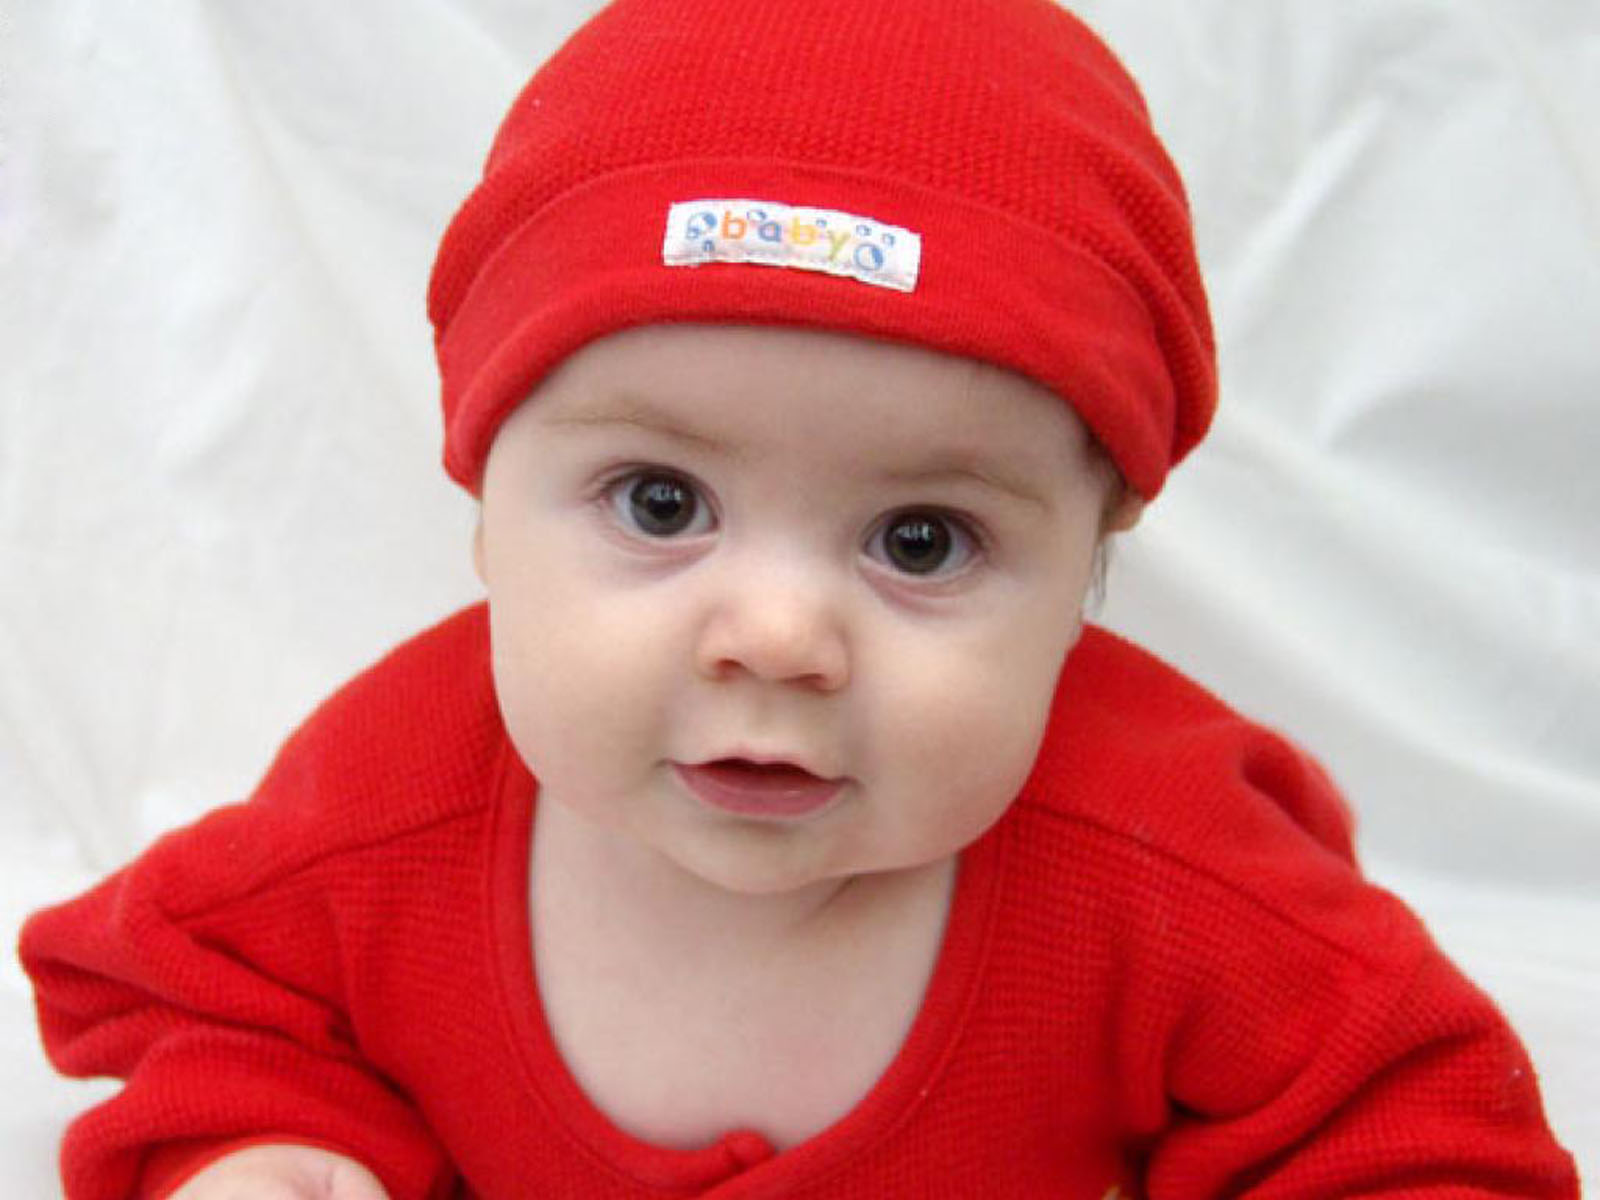 Download cute baby boy stock photos. Affordable and search from millions of royalty free images, photos and vectors.